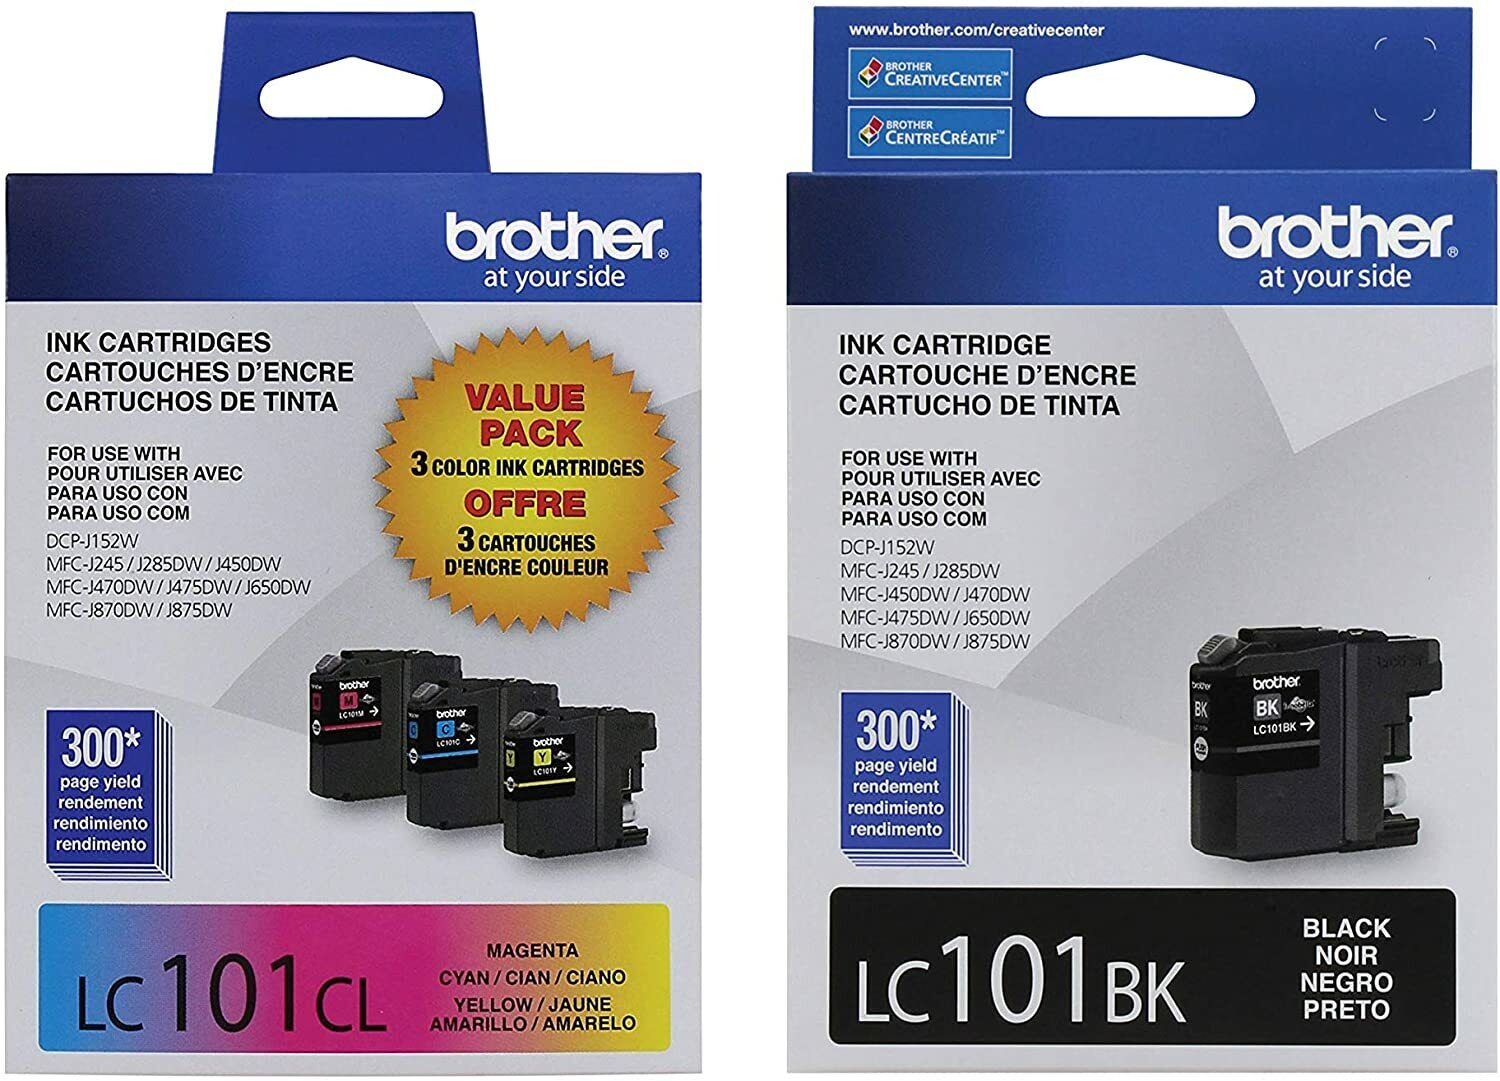 Brother Lc101 Ink Cartridges Black, Cyan, Magenta, Yellow In Retail Packaging - $36.95